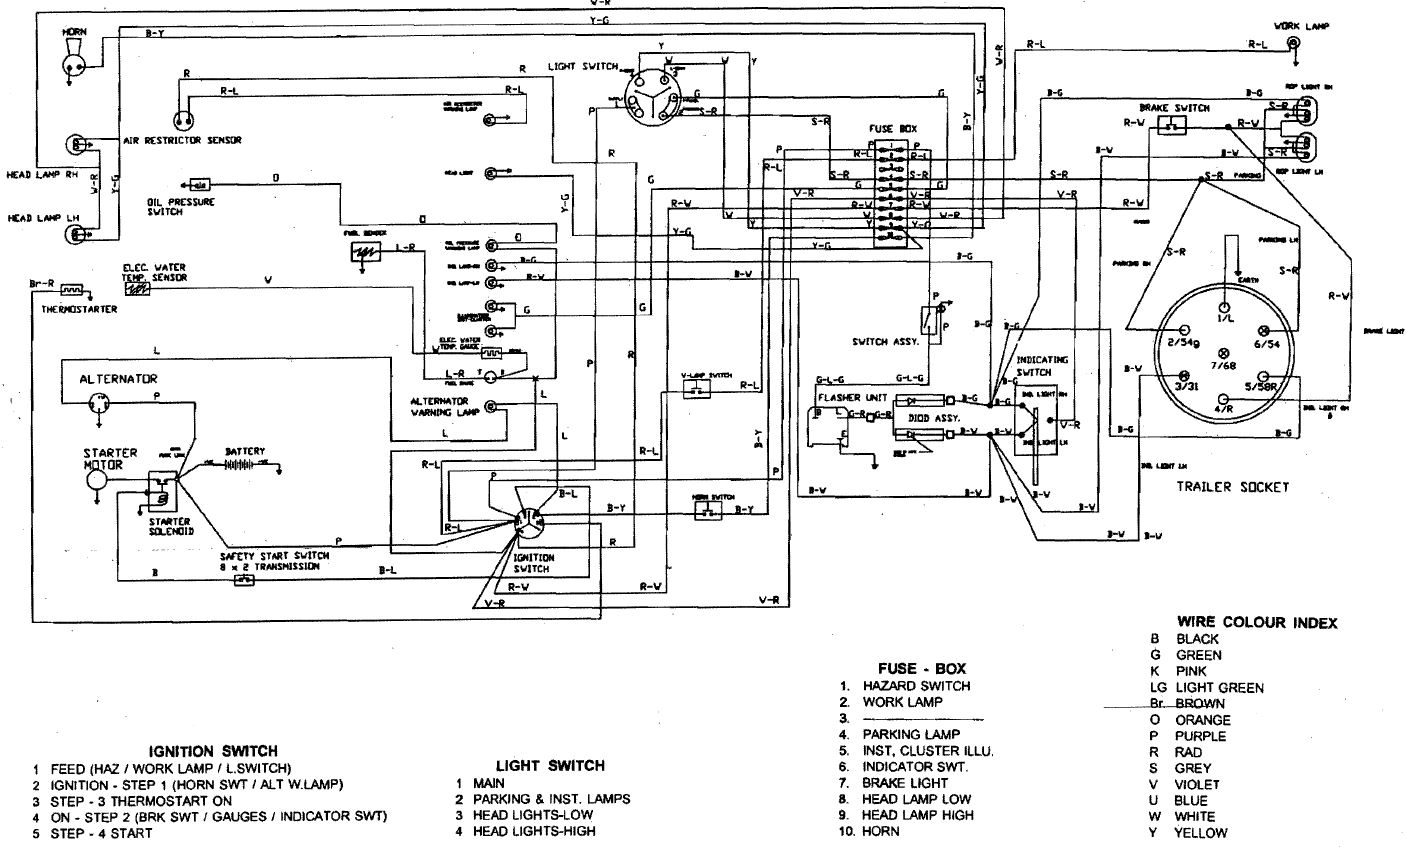 20158463319_b82d524c3d_o ignition switch wiring diagram ignition wiring diagram at aneh.co